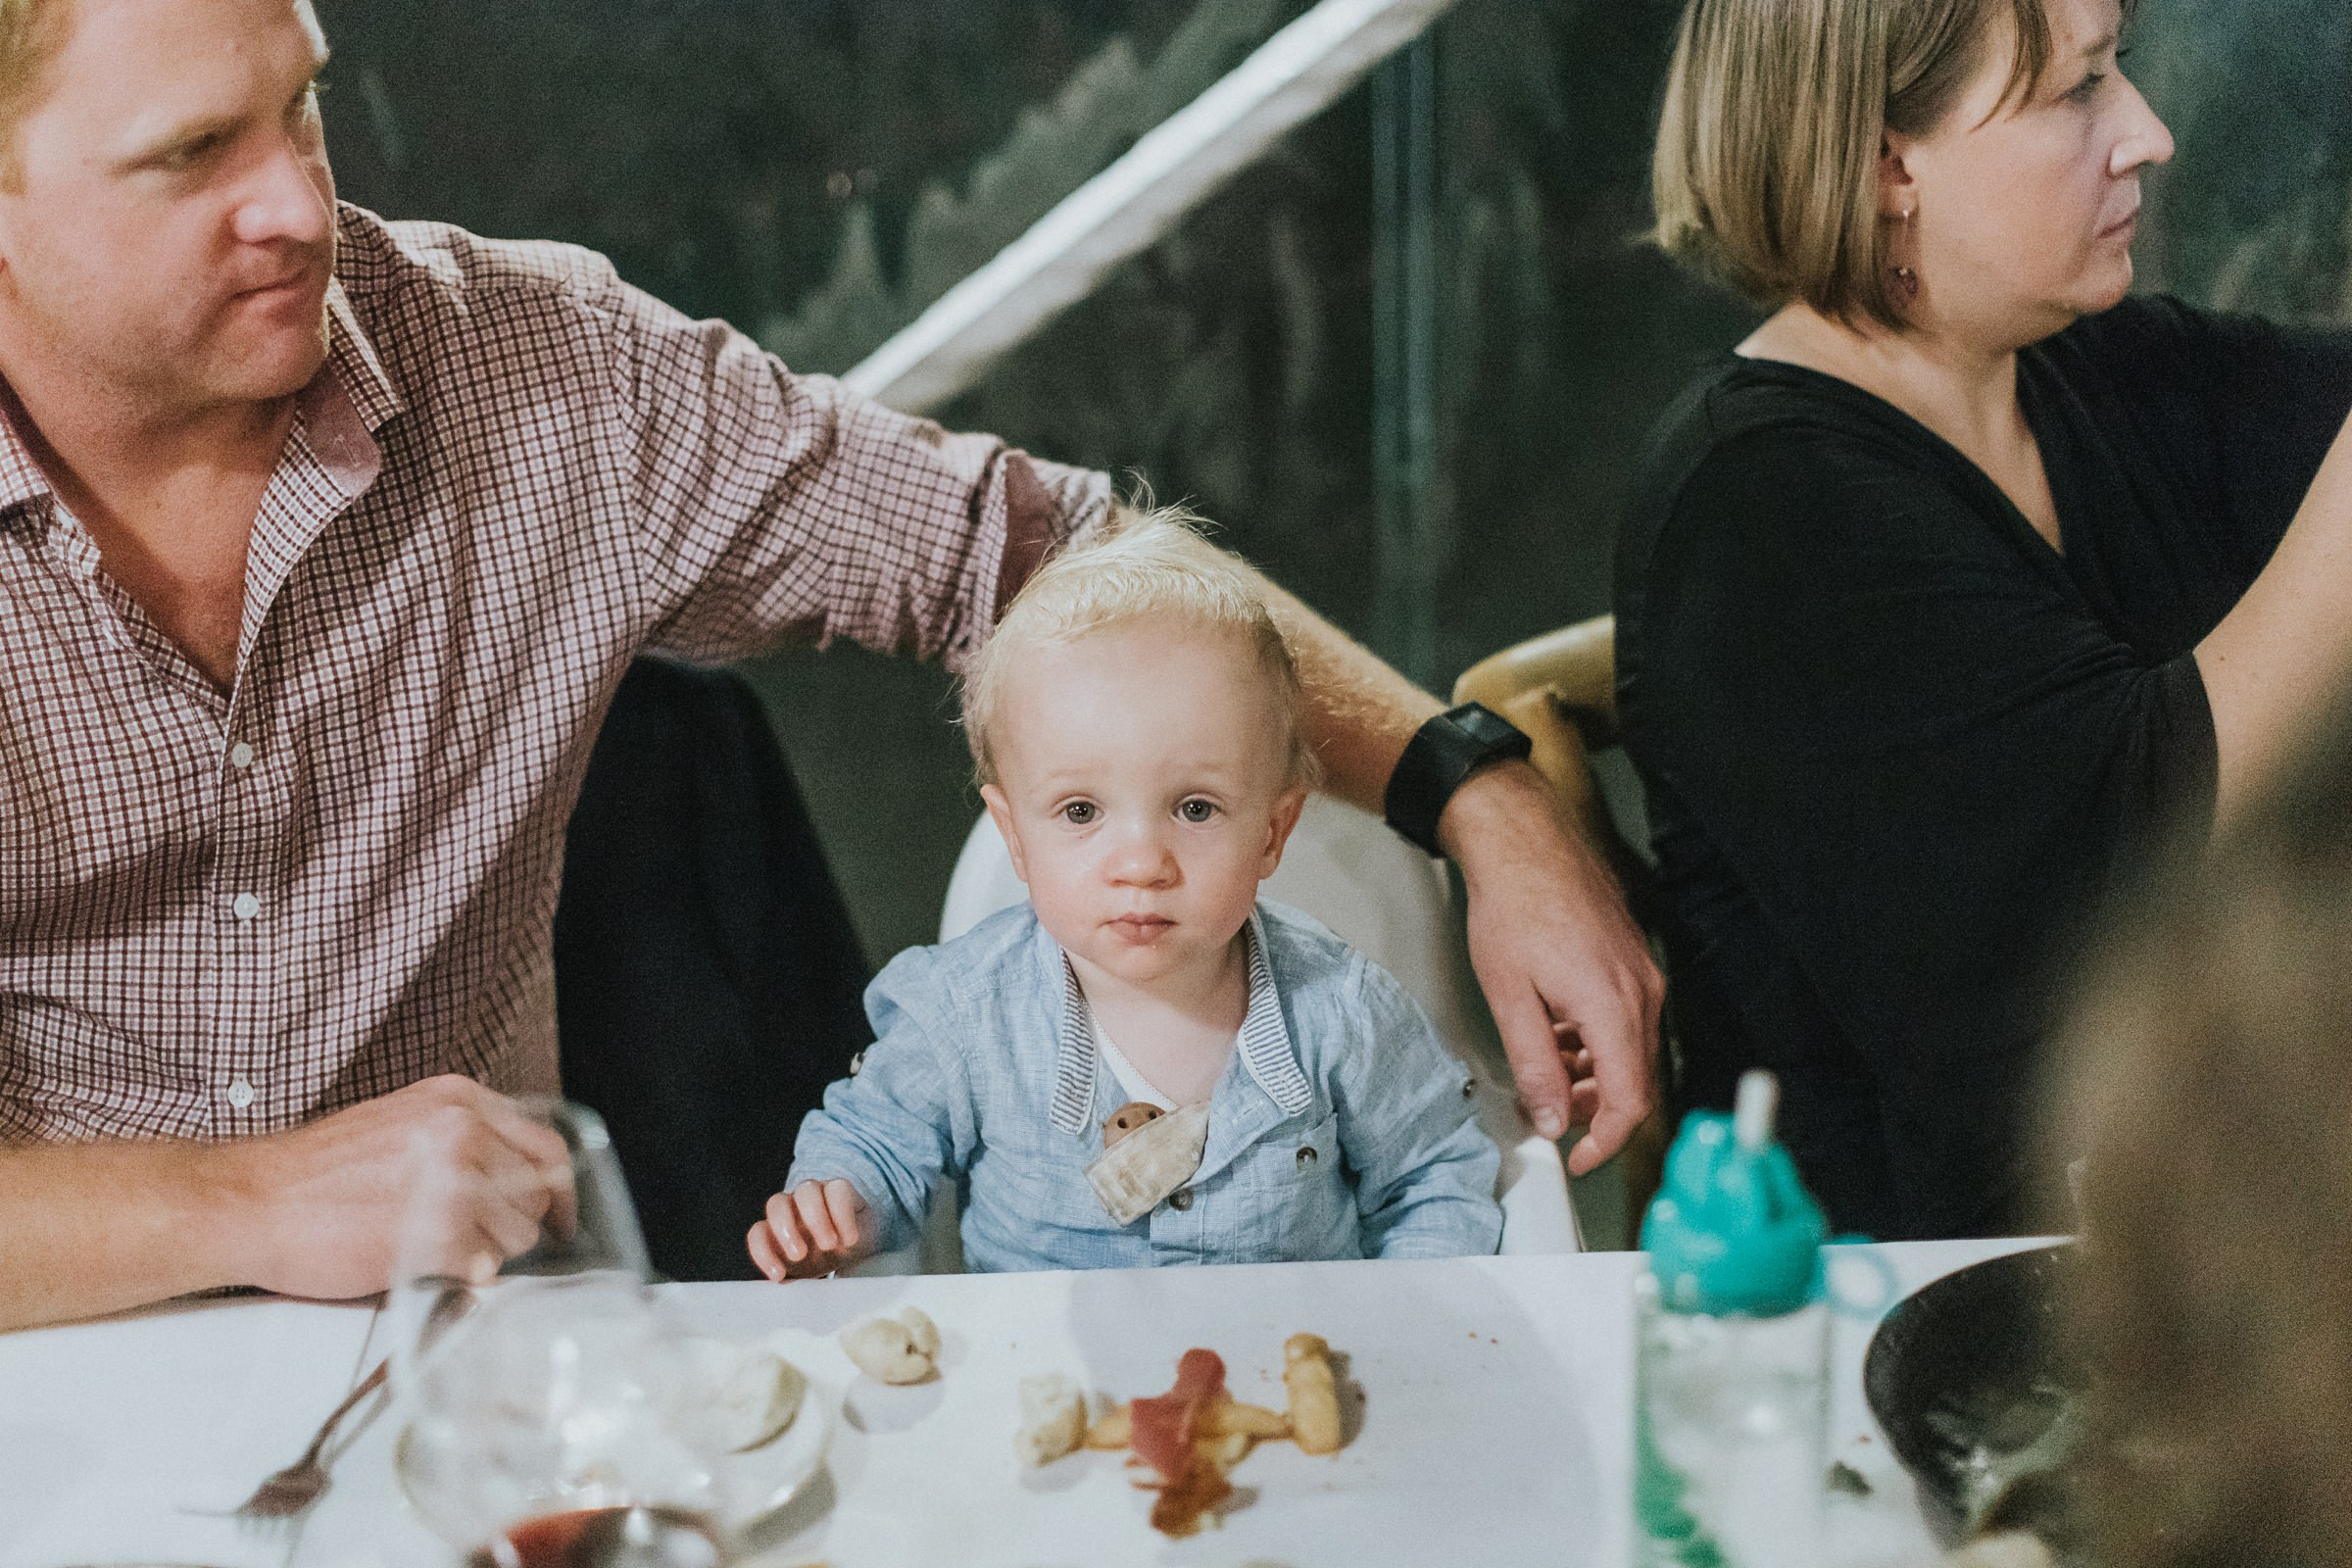 cute baby at wedding reception sitting at table